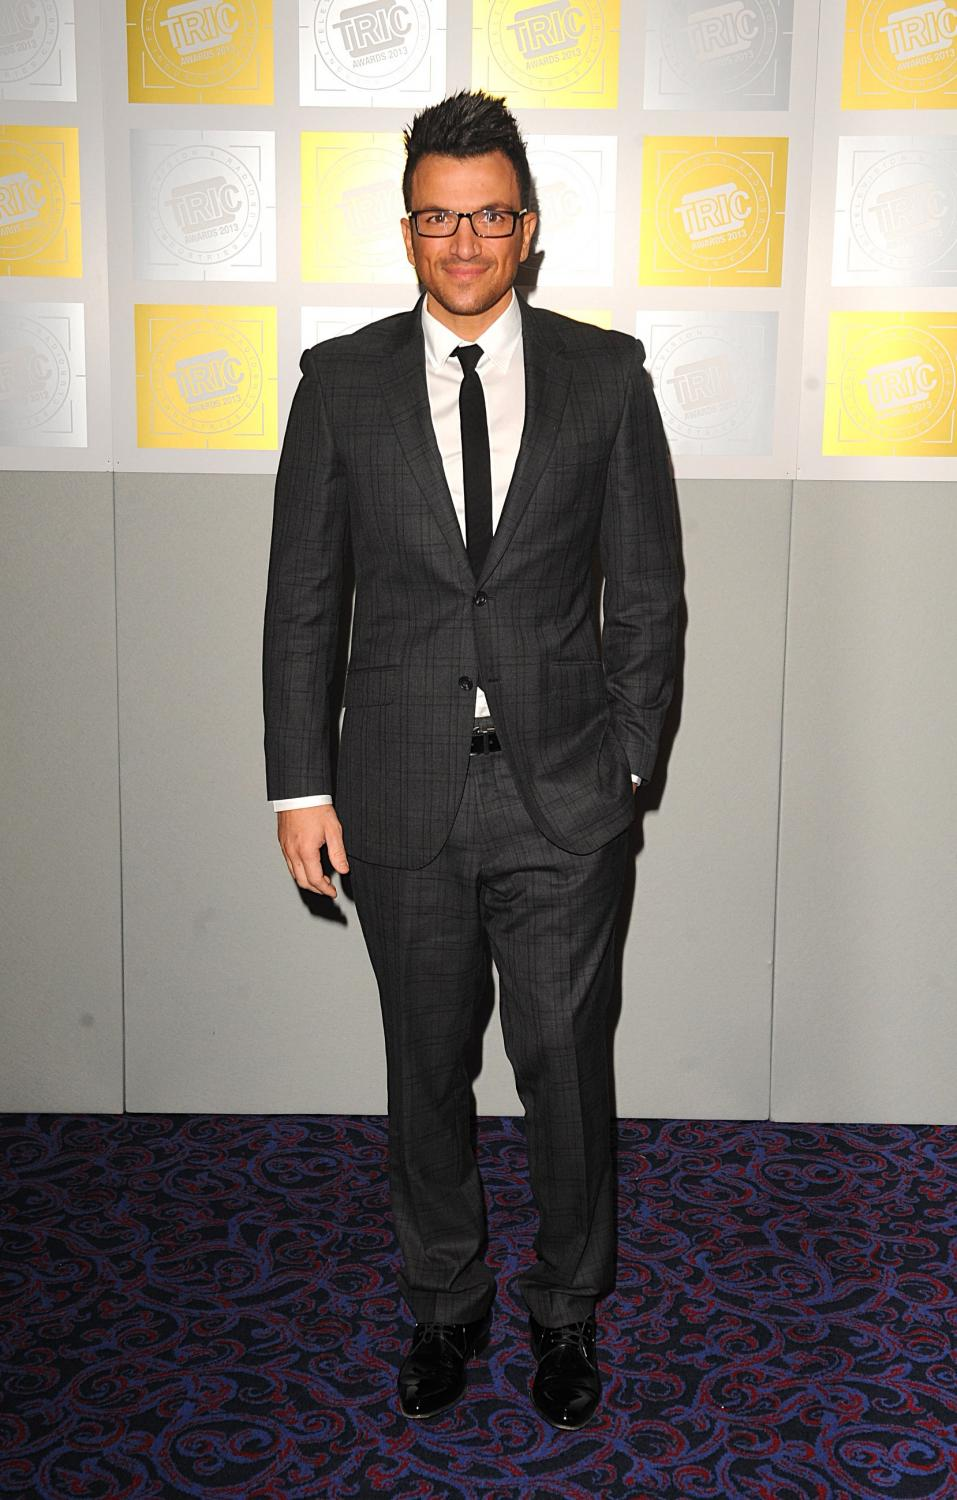 Peter Andre To Front 60 Minute Makeover News Tv News